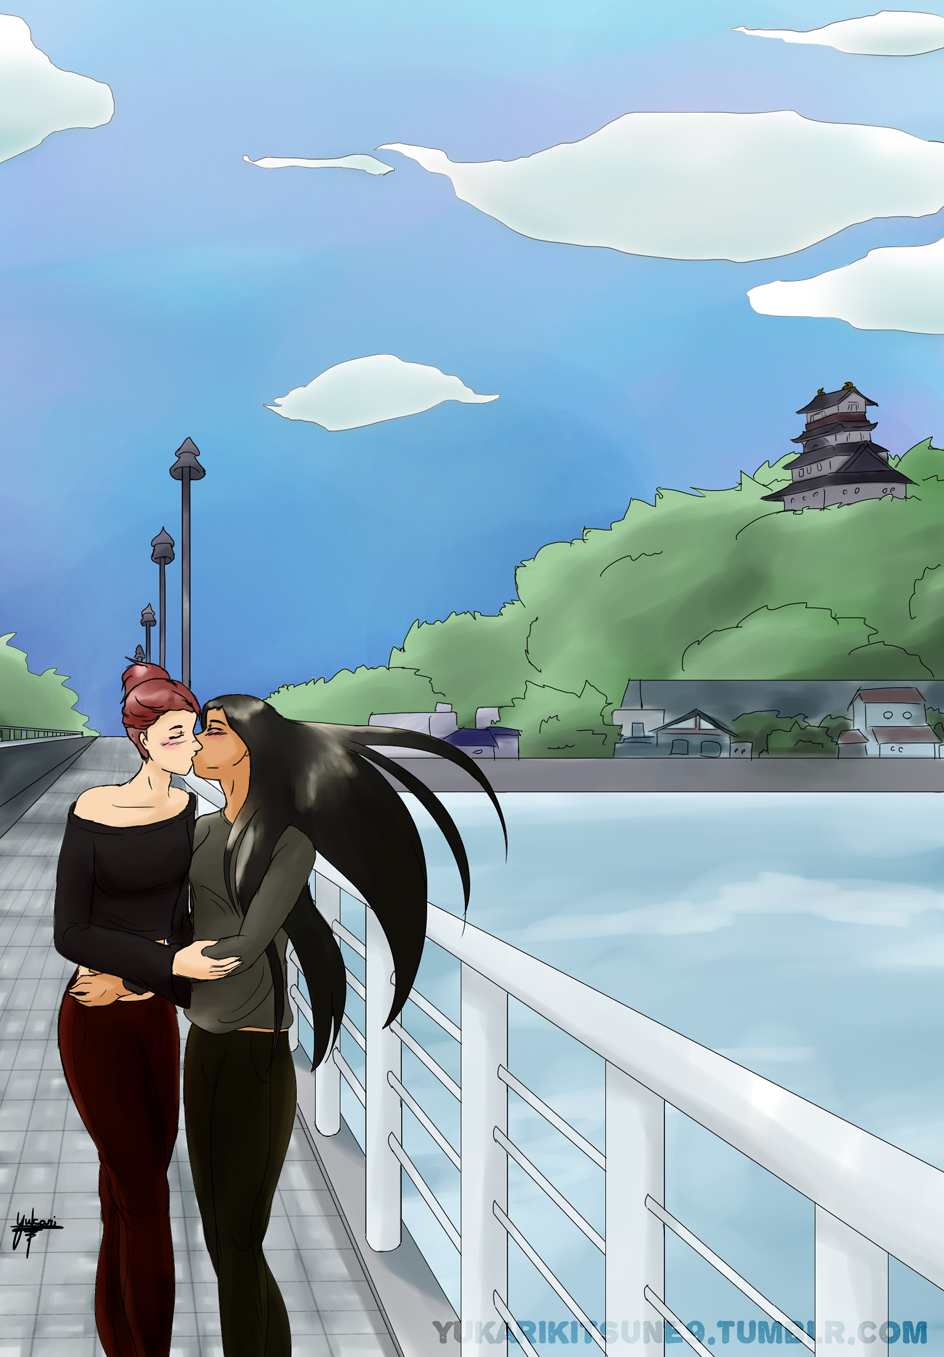 Same as the cover but without text, Mila and Sara on the bridge, kissing.